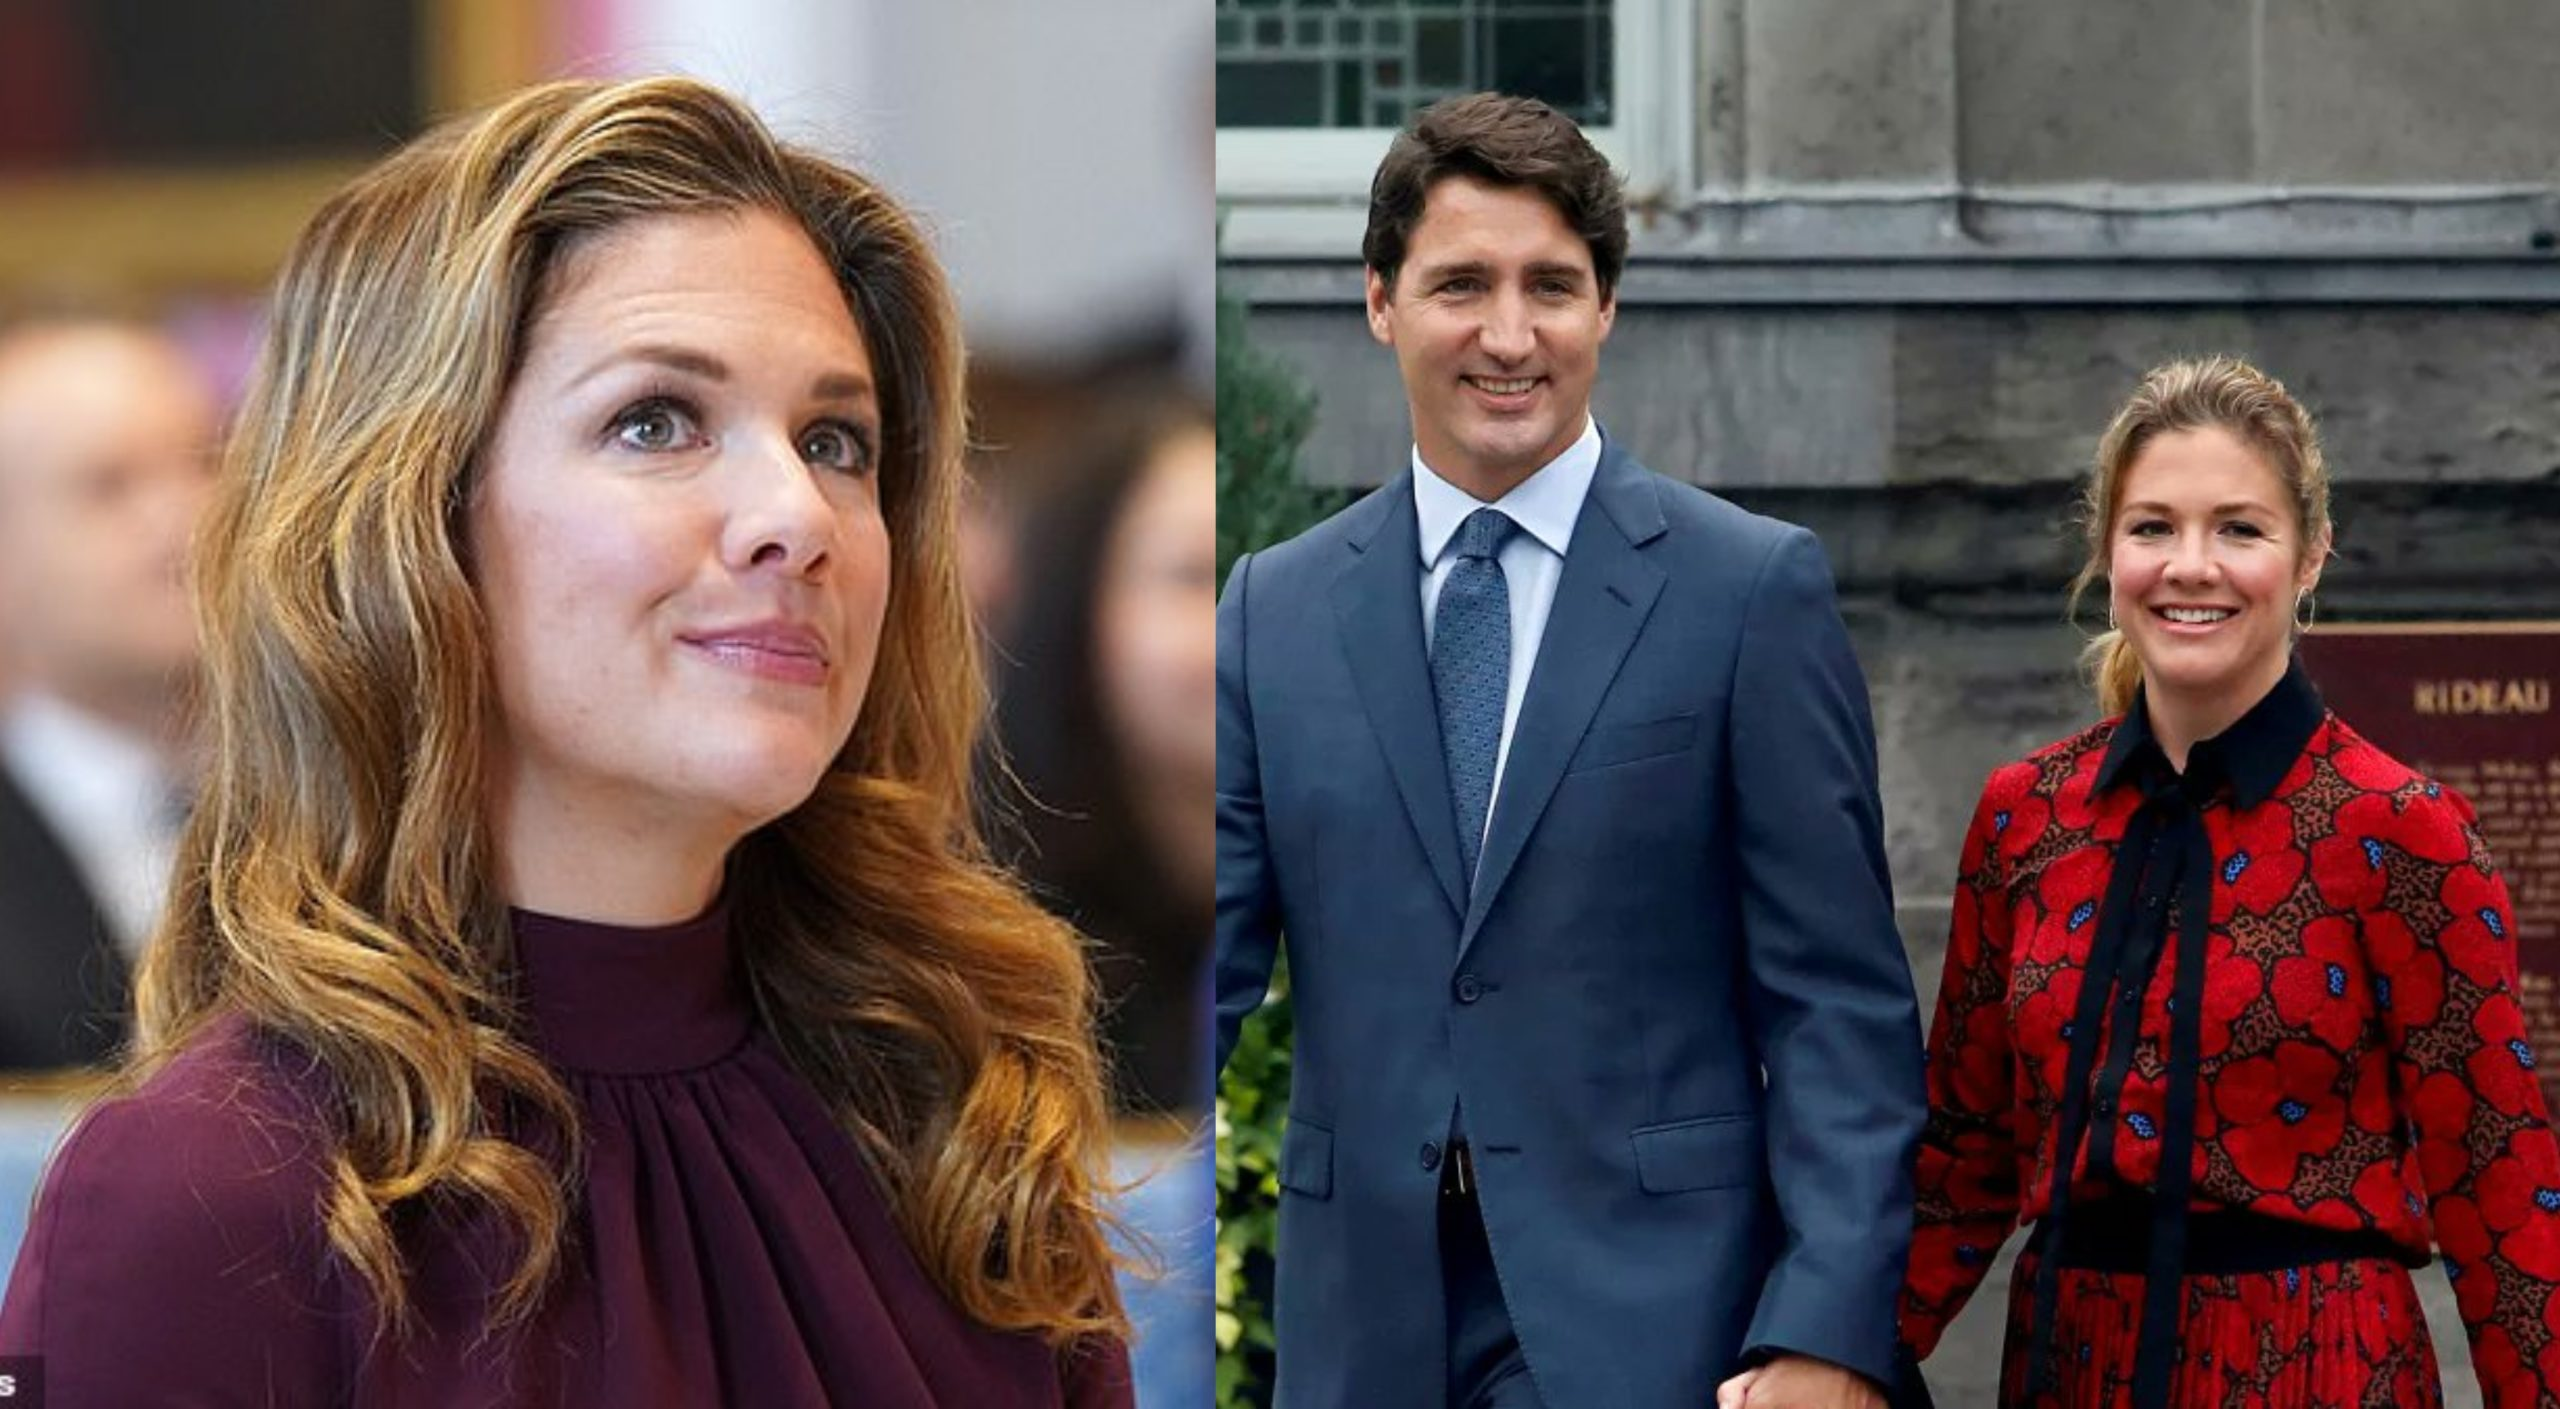 Canadian PM Justin Trudeau's Wife Diagnosed with CoronaVirus-19